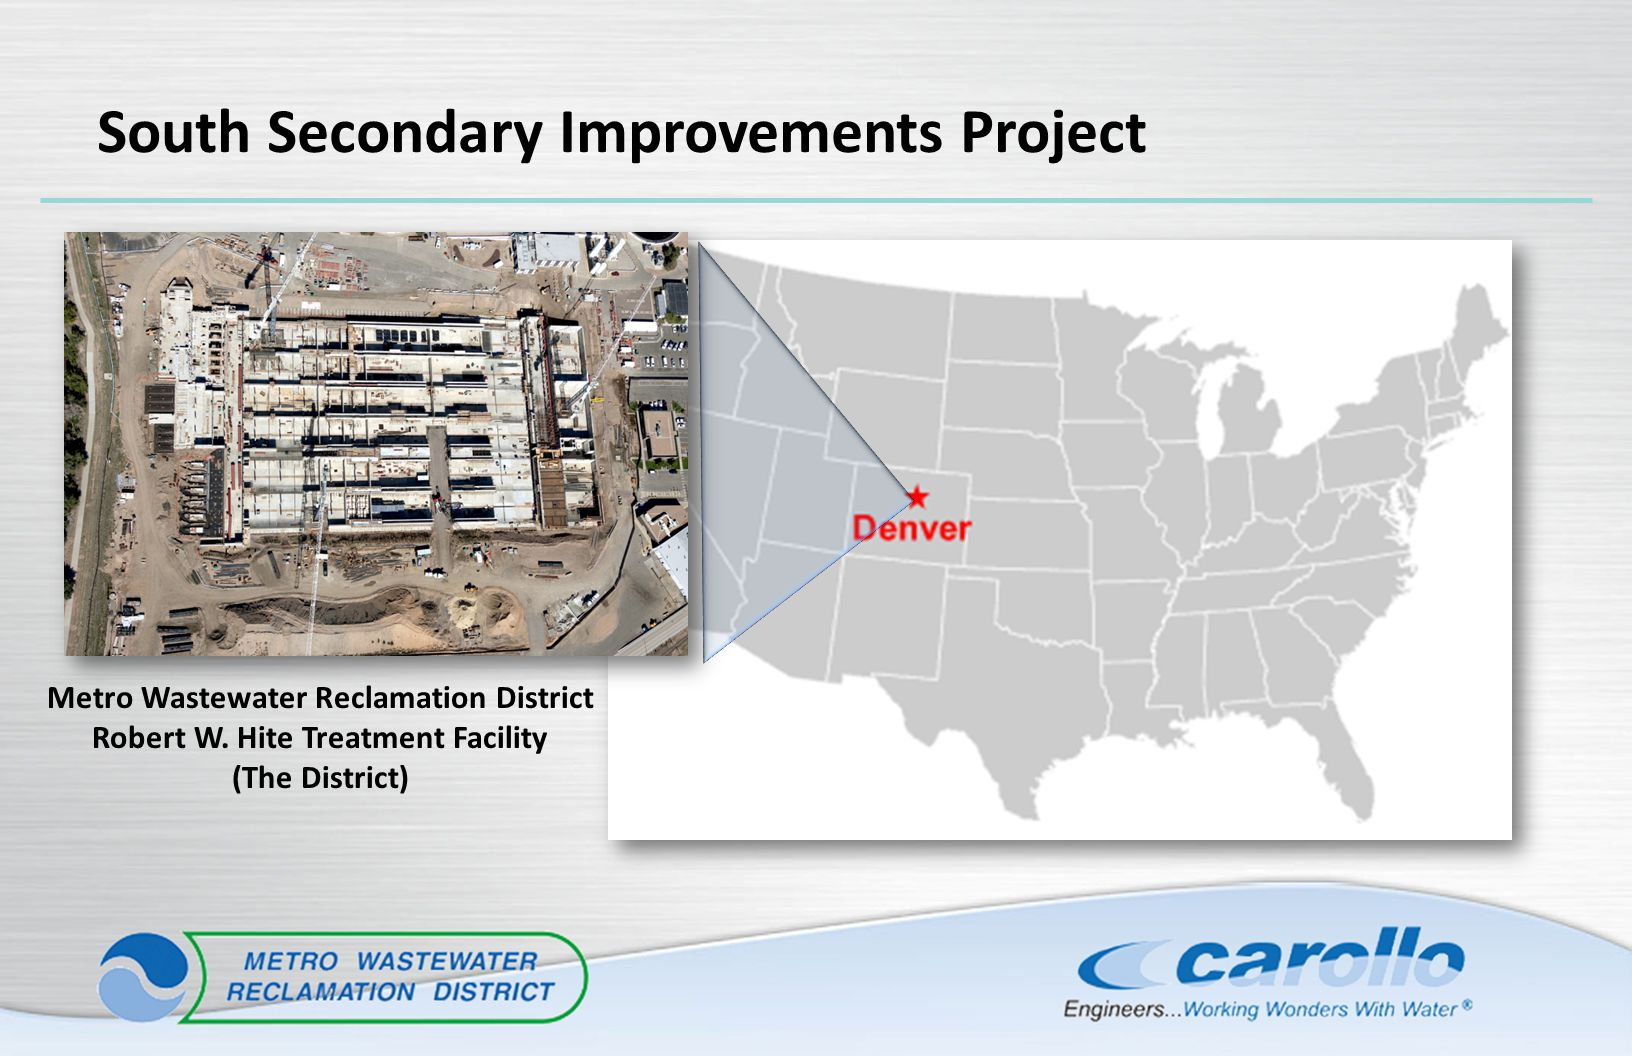 South Secondary Improvements Project Metro Wastewater Reclamation District Robert W. Hite Treatment Facility (The District)